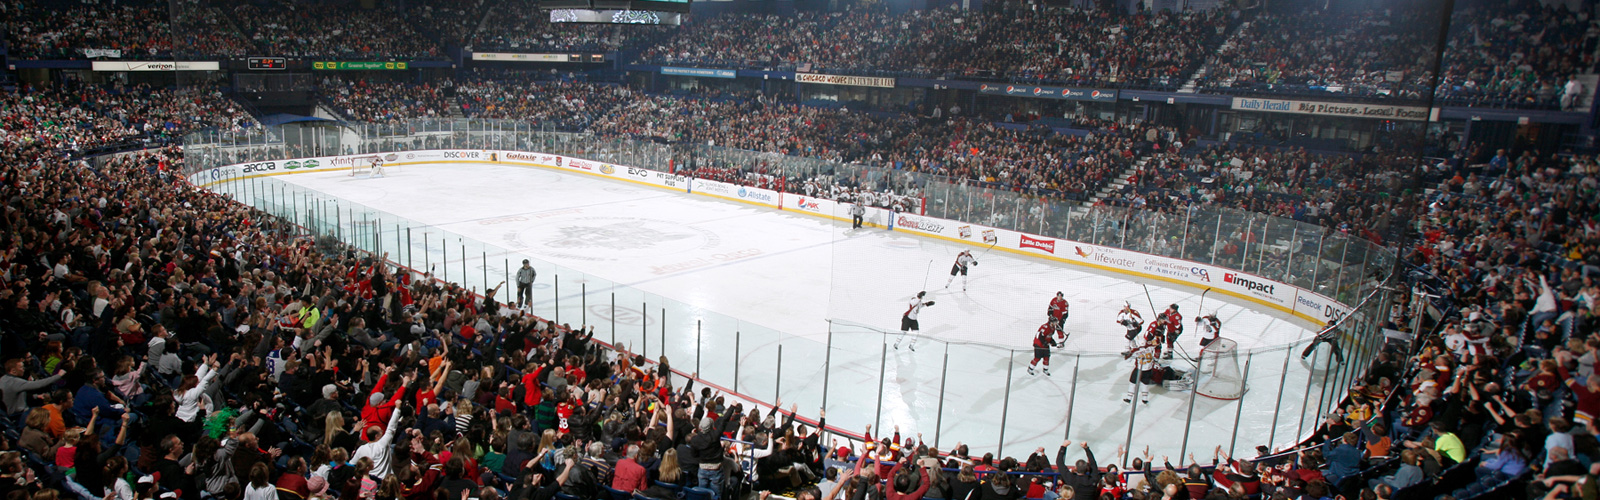 Chicago hockey arena